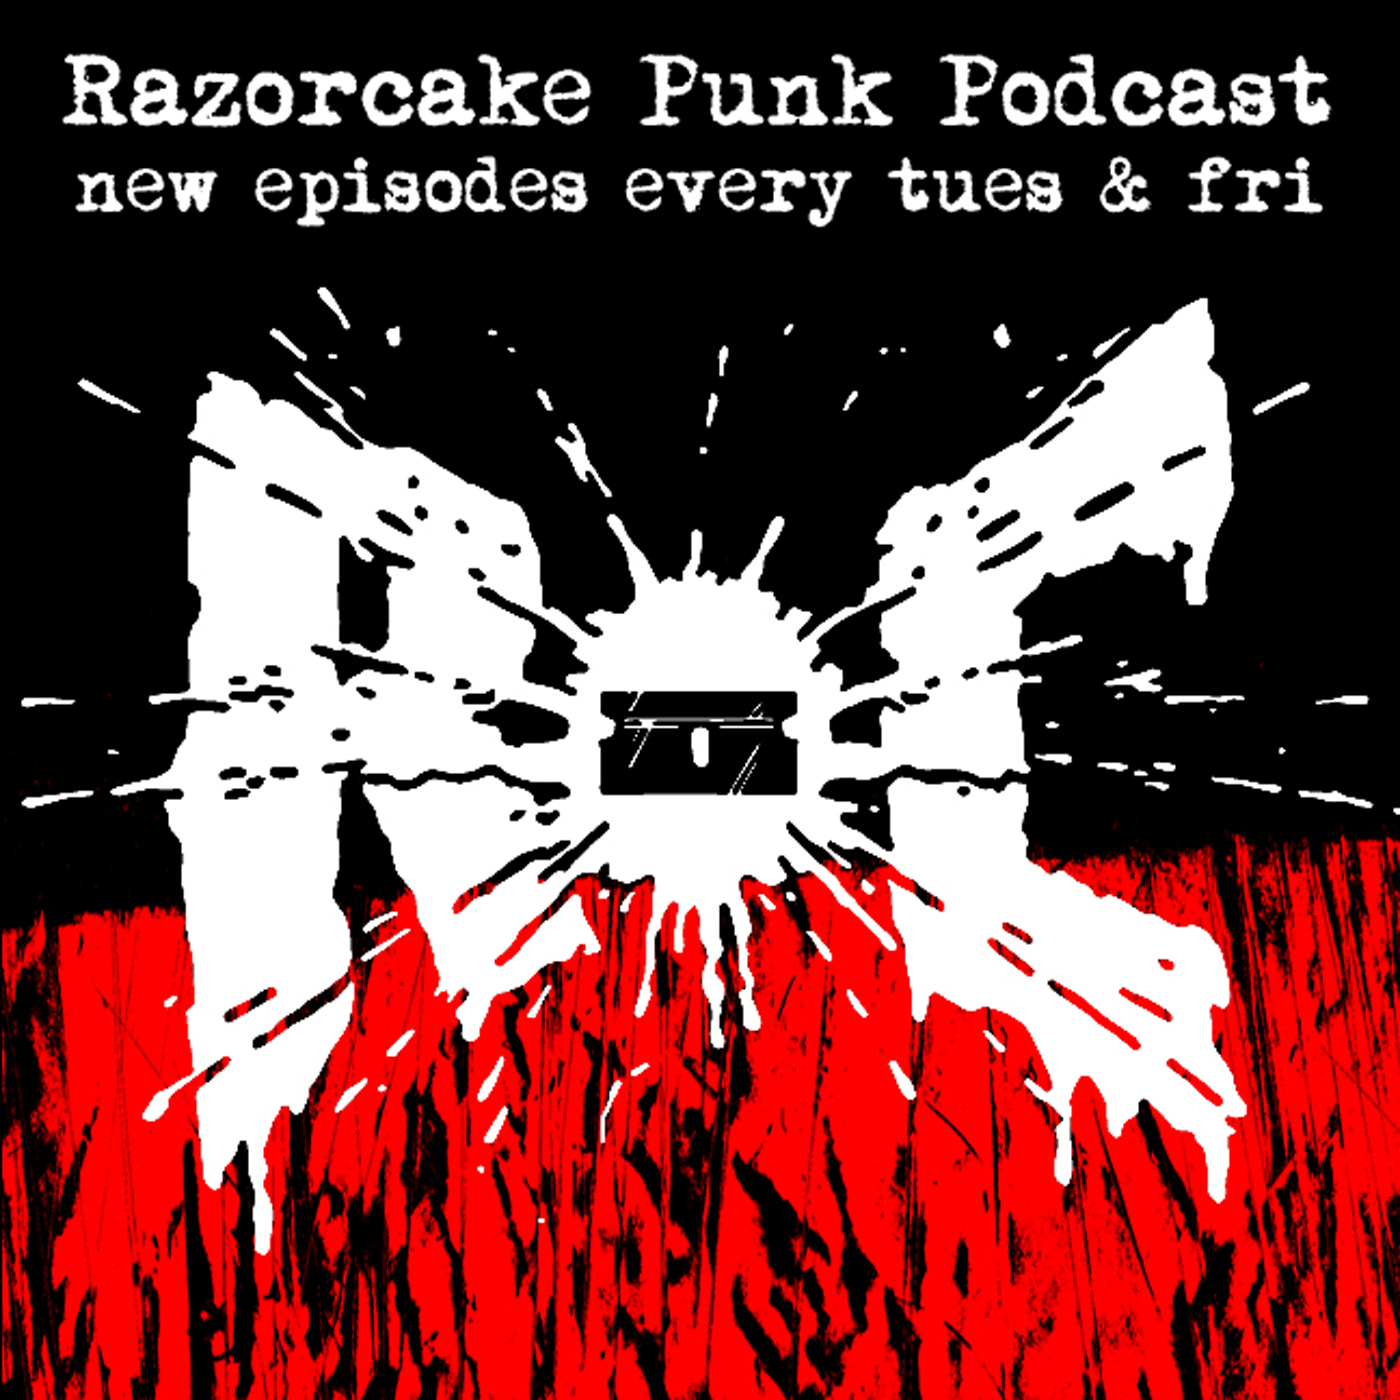 Razorcake Podcast #626 with Adel Souto, The South Florida Edition